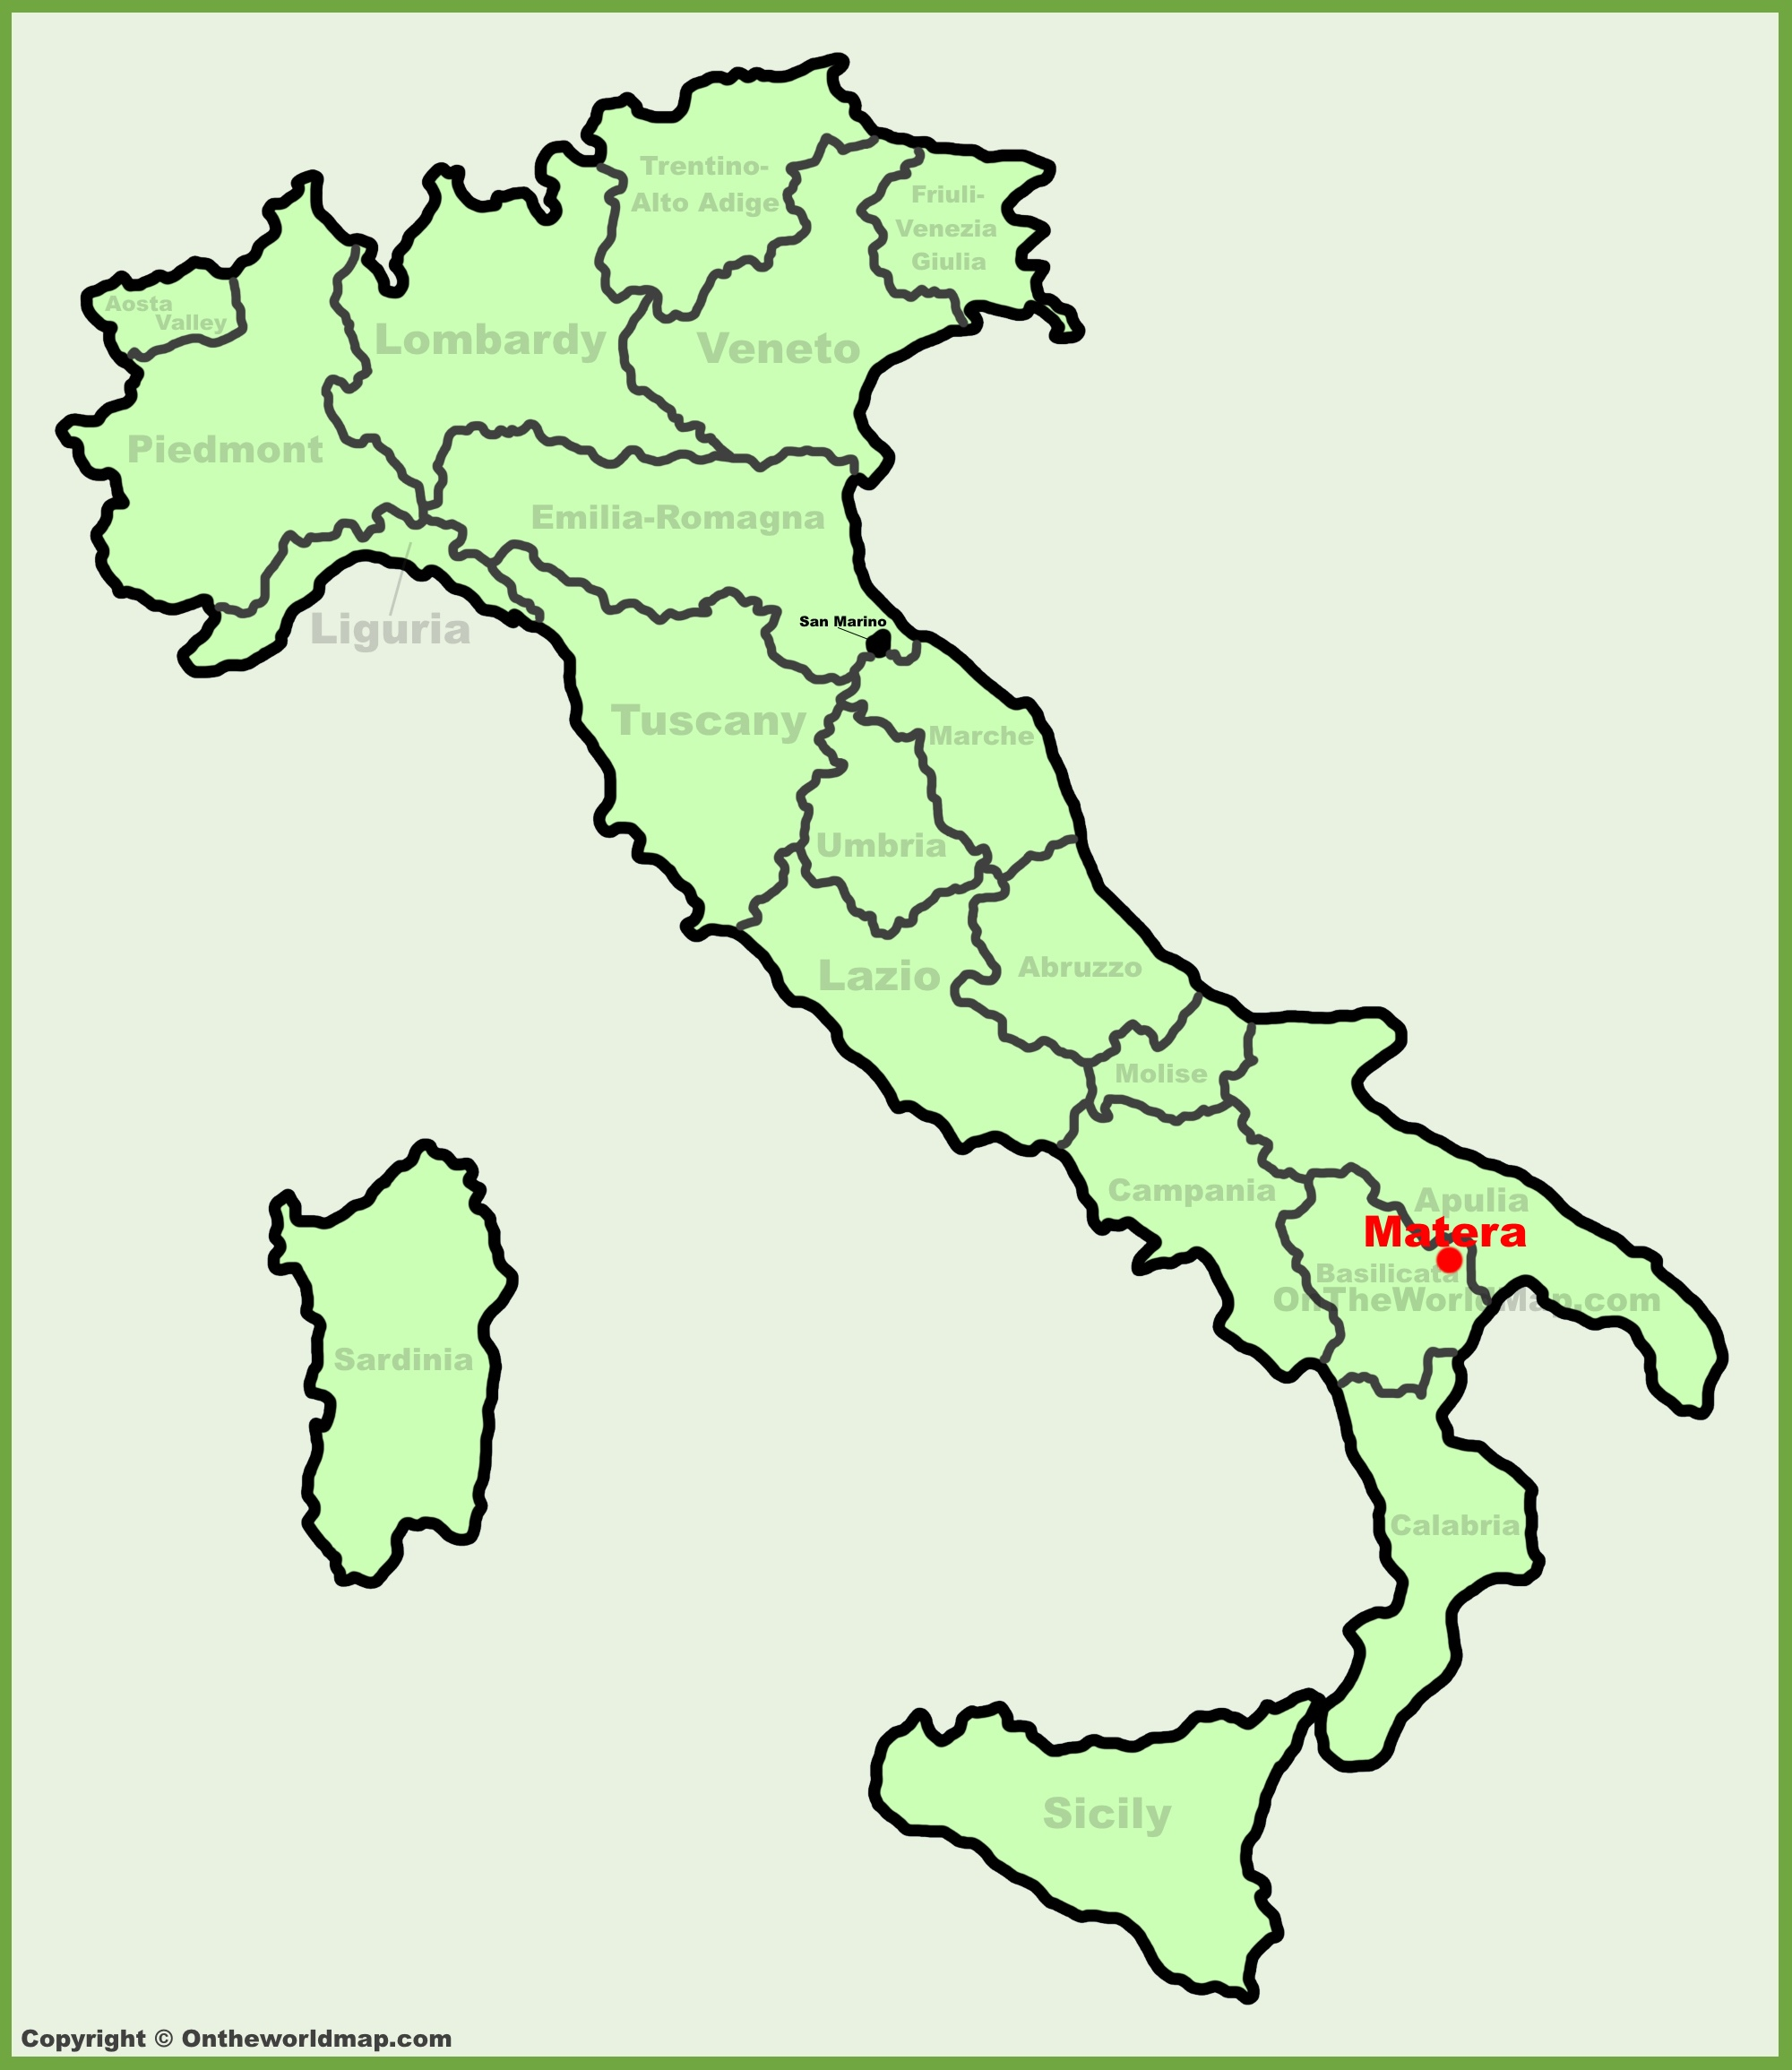 Matera location on the Italy map